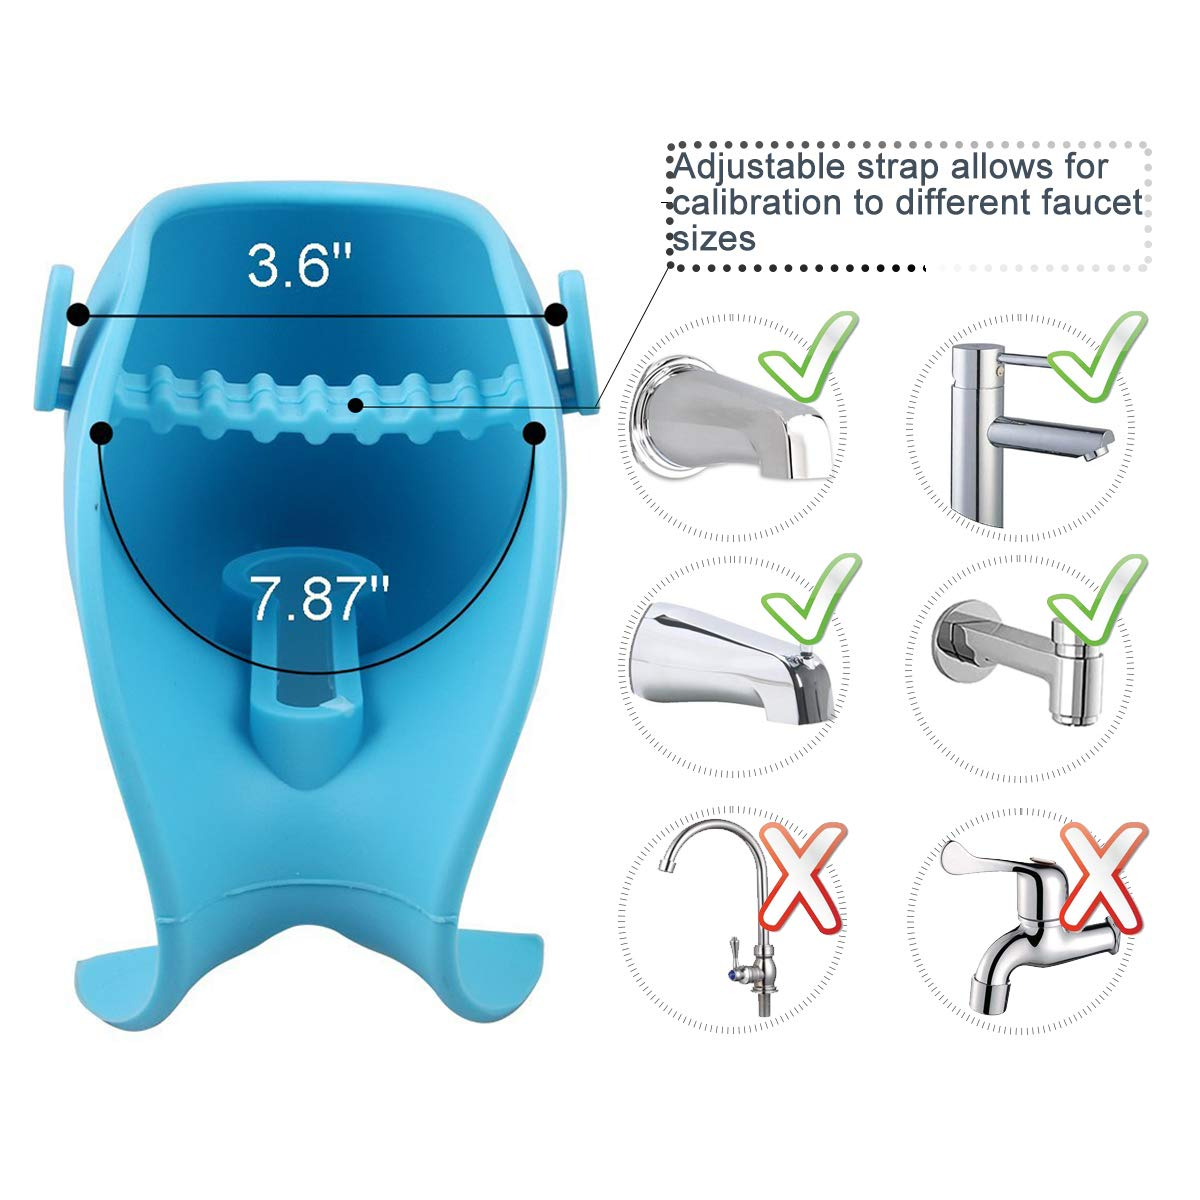 Bath Spout Cover, Universal Whale Bathtub Faucet Baby Shower Protector Cover for Kid Toddler Bath Safety (Blue)